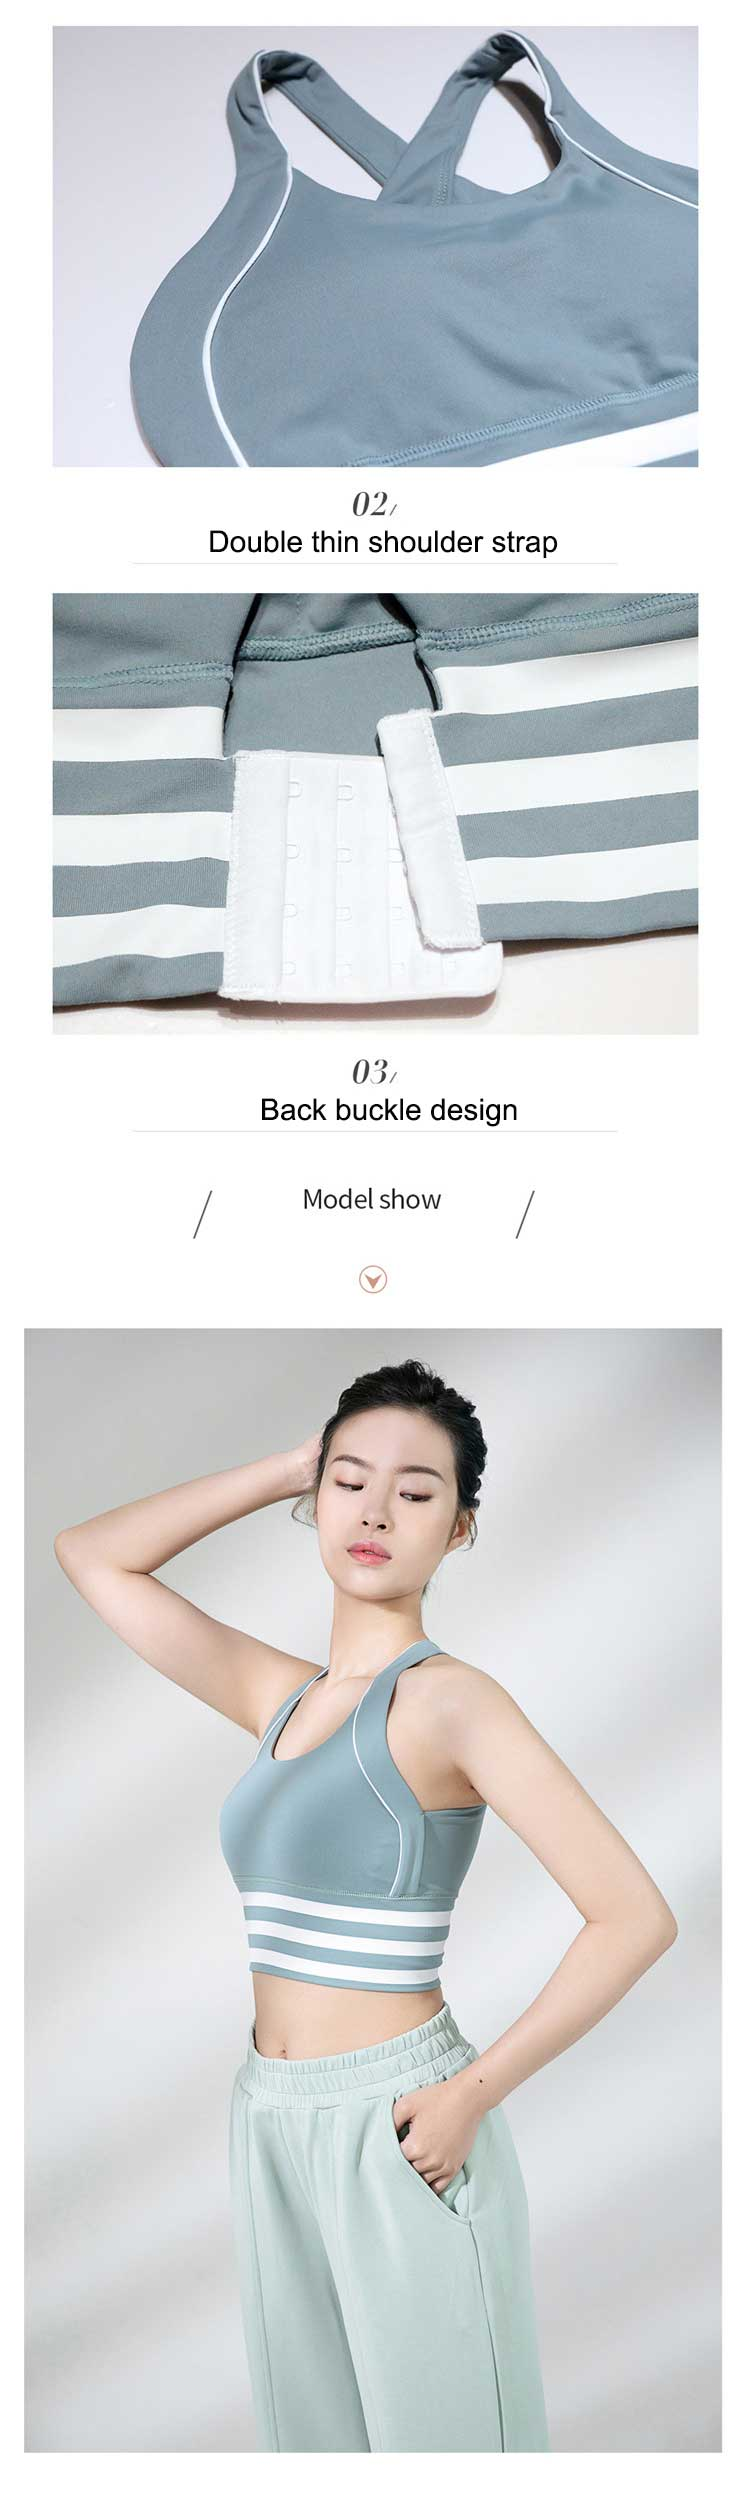 Complementary-with-double-fine-shoulder-strap-crossed-beautiful-back